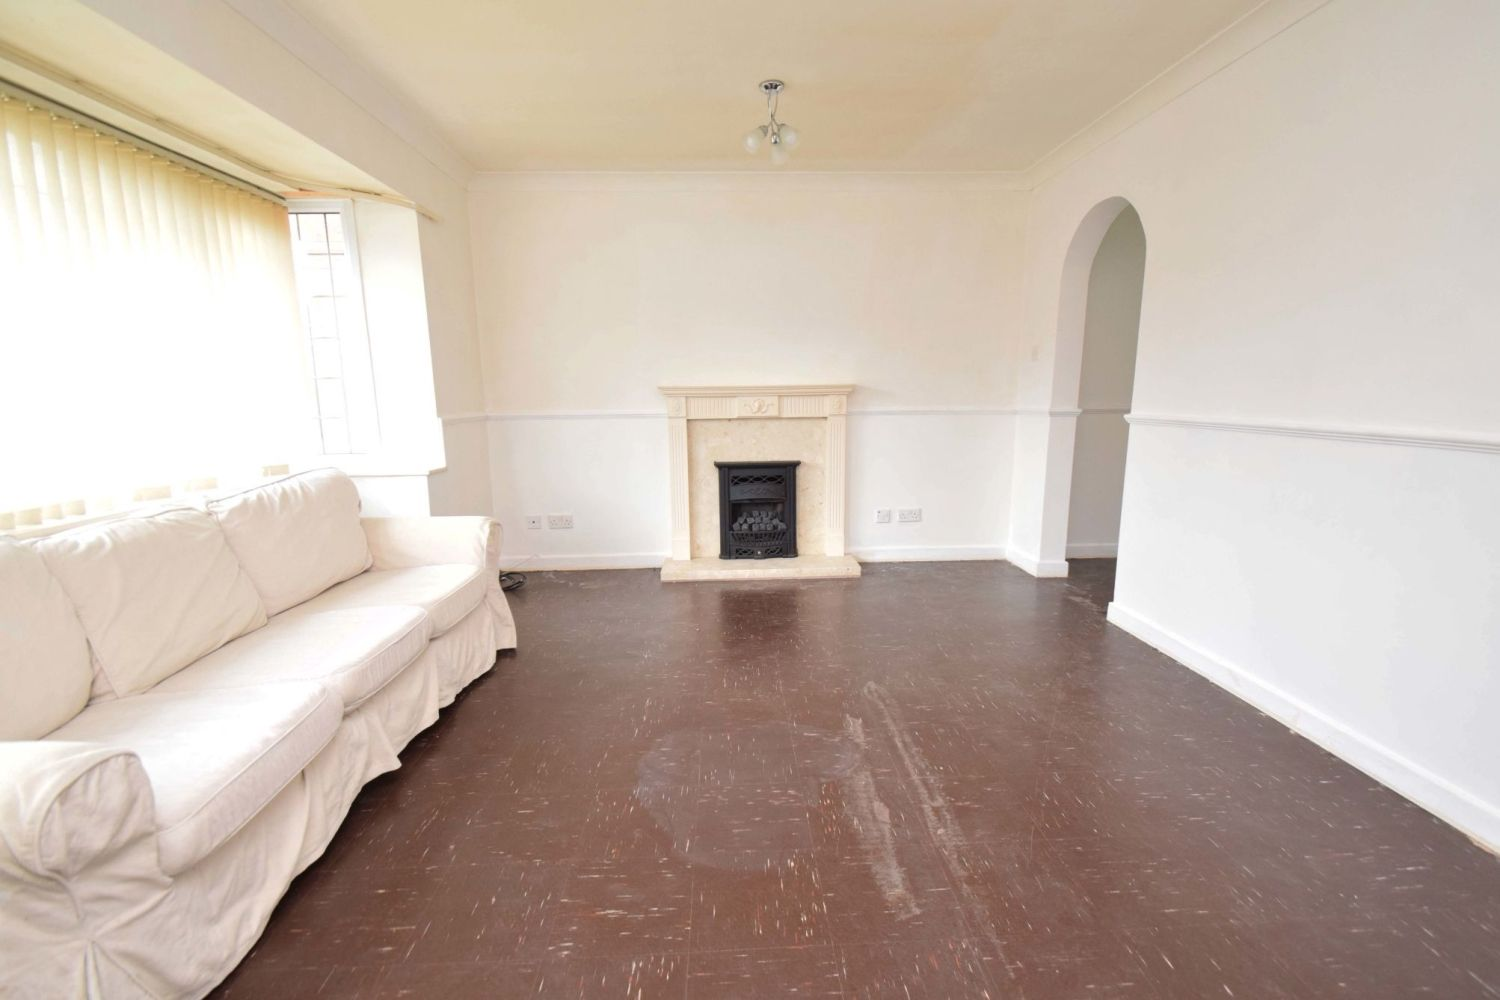 3 bed detached for sale in Avon Close, Stoke Heath, Bromsgrove, B60  - Property Image 2